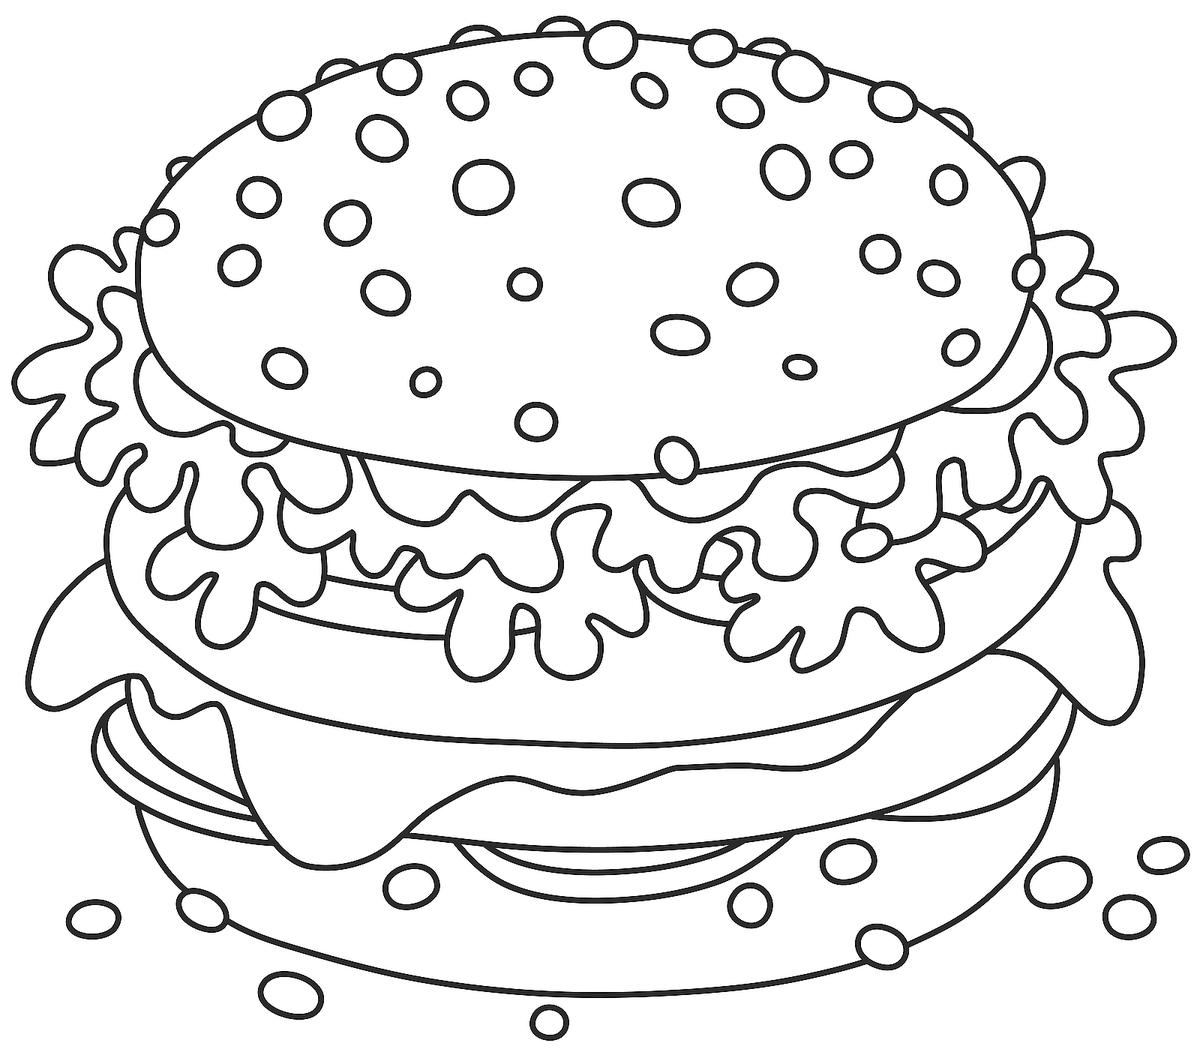 Food Coloring Pages 20 Free Printable Coloring Pages Of